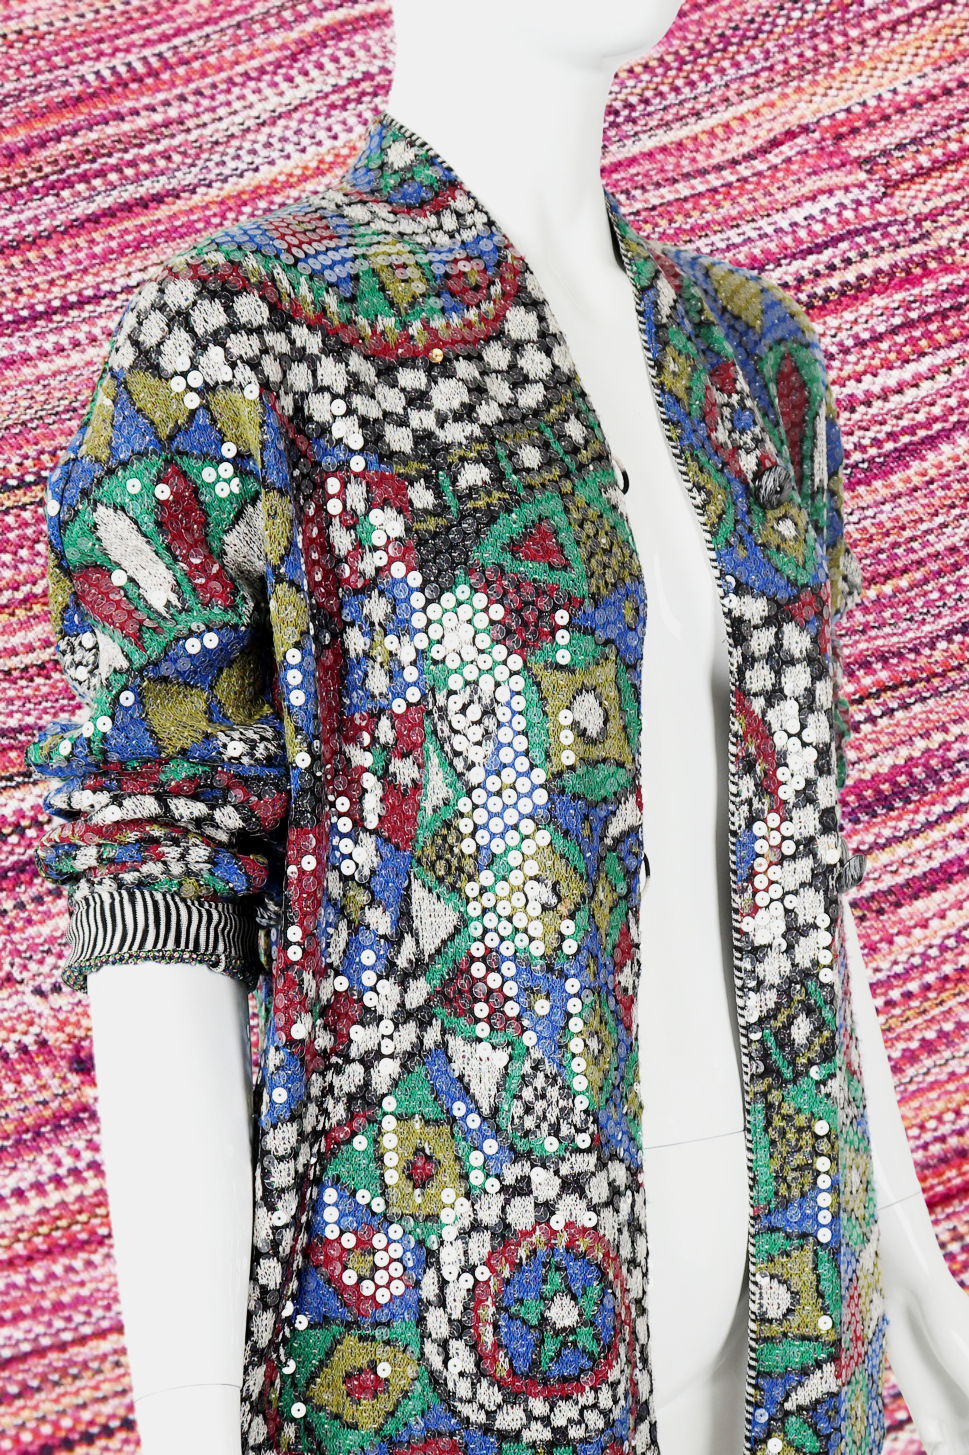 Recess DressCode Designer Consignment Vintage Missoni Knit Knitwear Sweater Weather Sequin Geometric Sweater Jacket Swacket